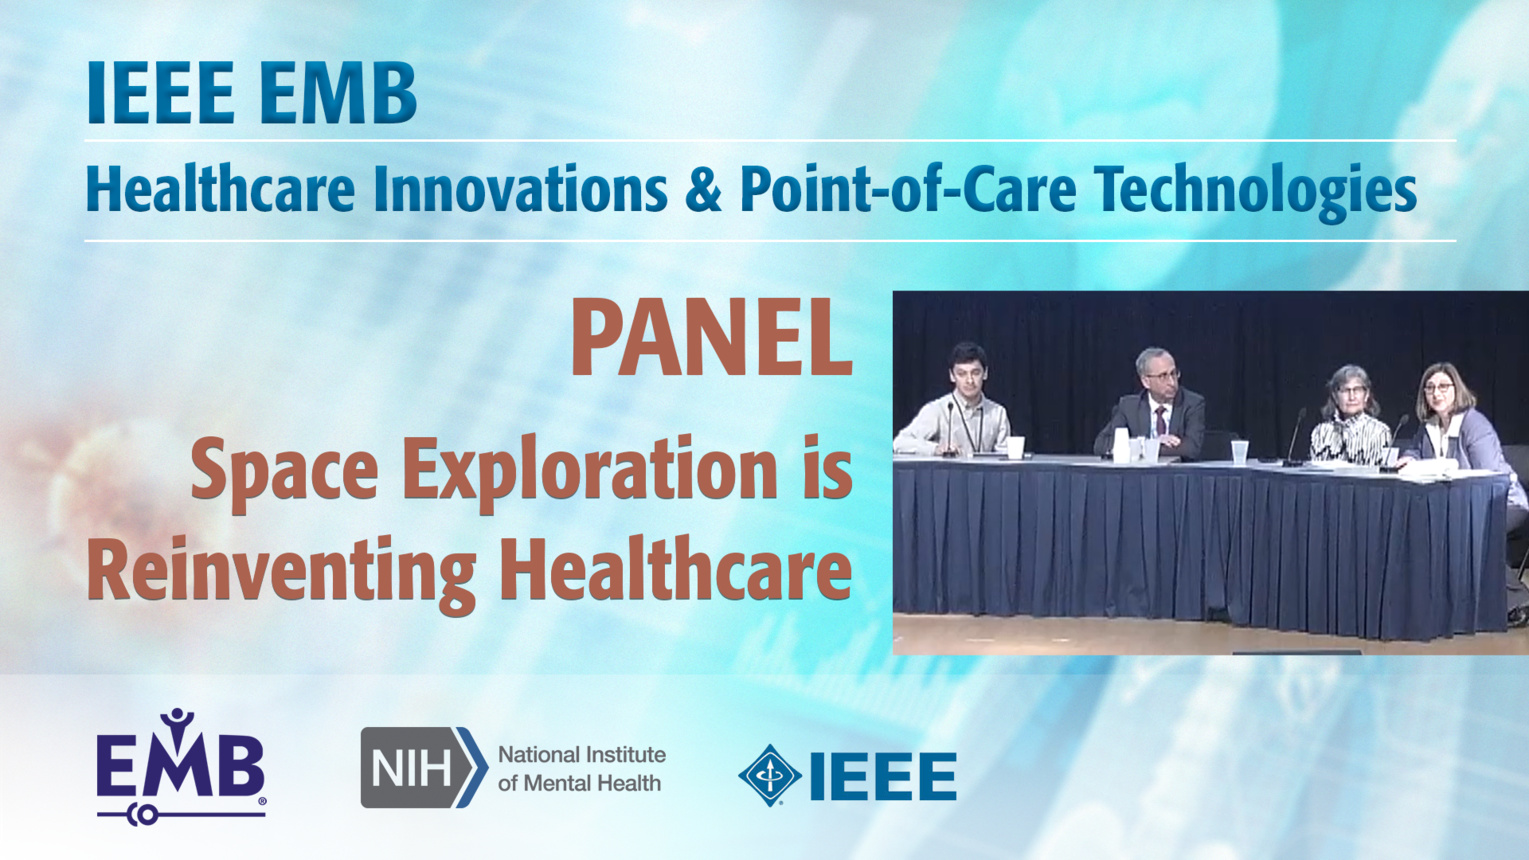 Panel: Space Exploration is Reinventing Healthcare -  IEEE EMBS at NIH, 2019